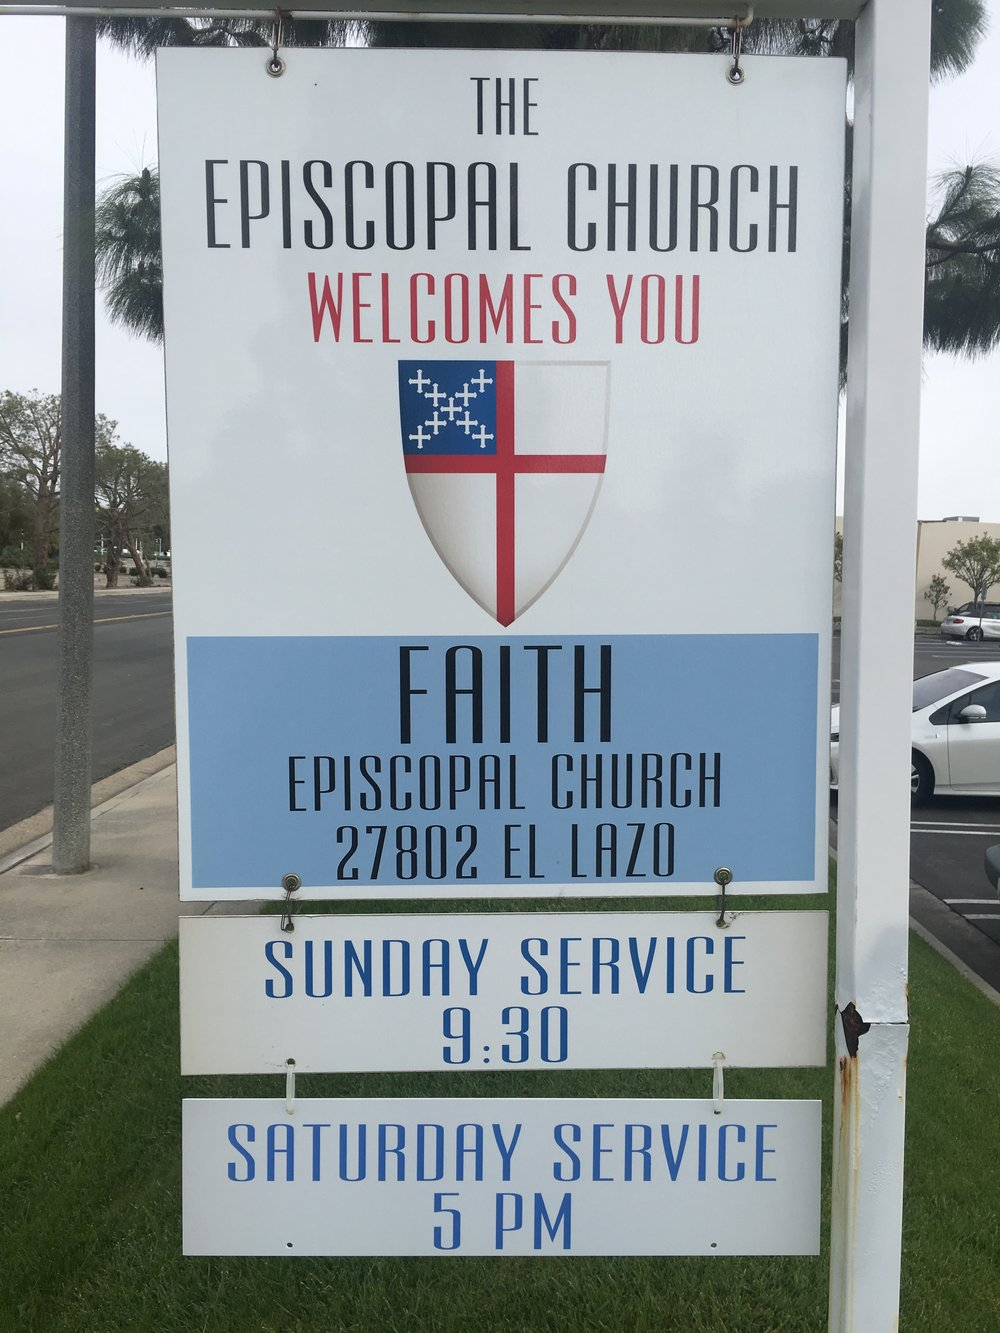 Faith's Location - Address: 27802 El LazoLaguna Niguel, CA 92677Phone: (949) 448-8114Disabled parking availableBuilding is fully accessible